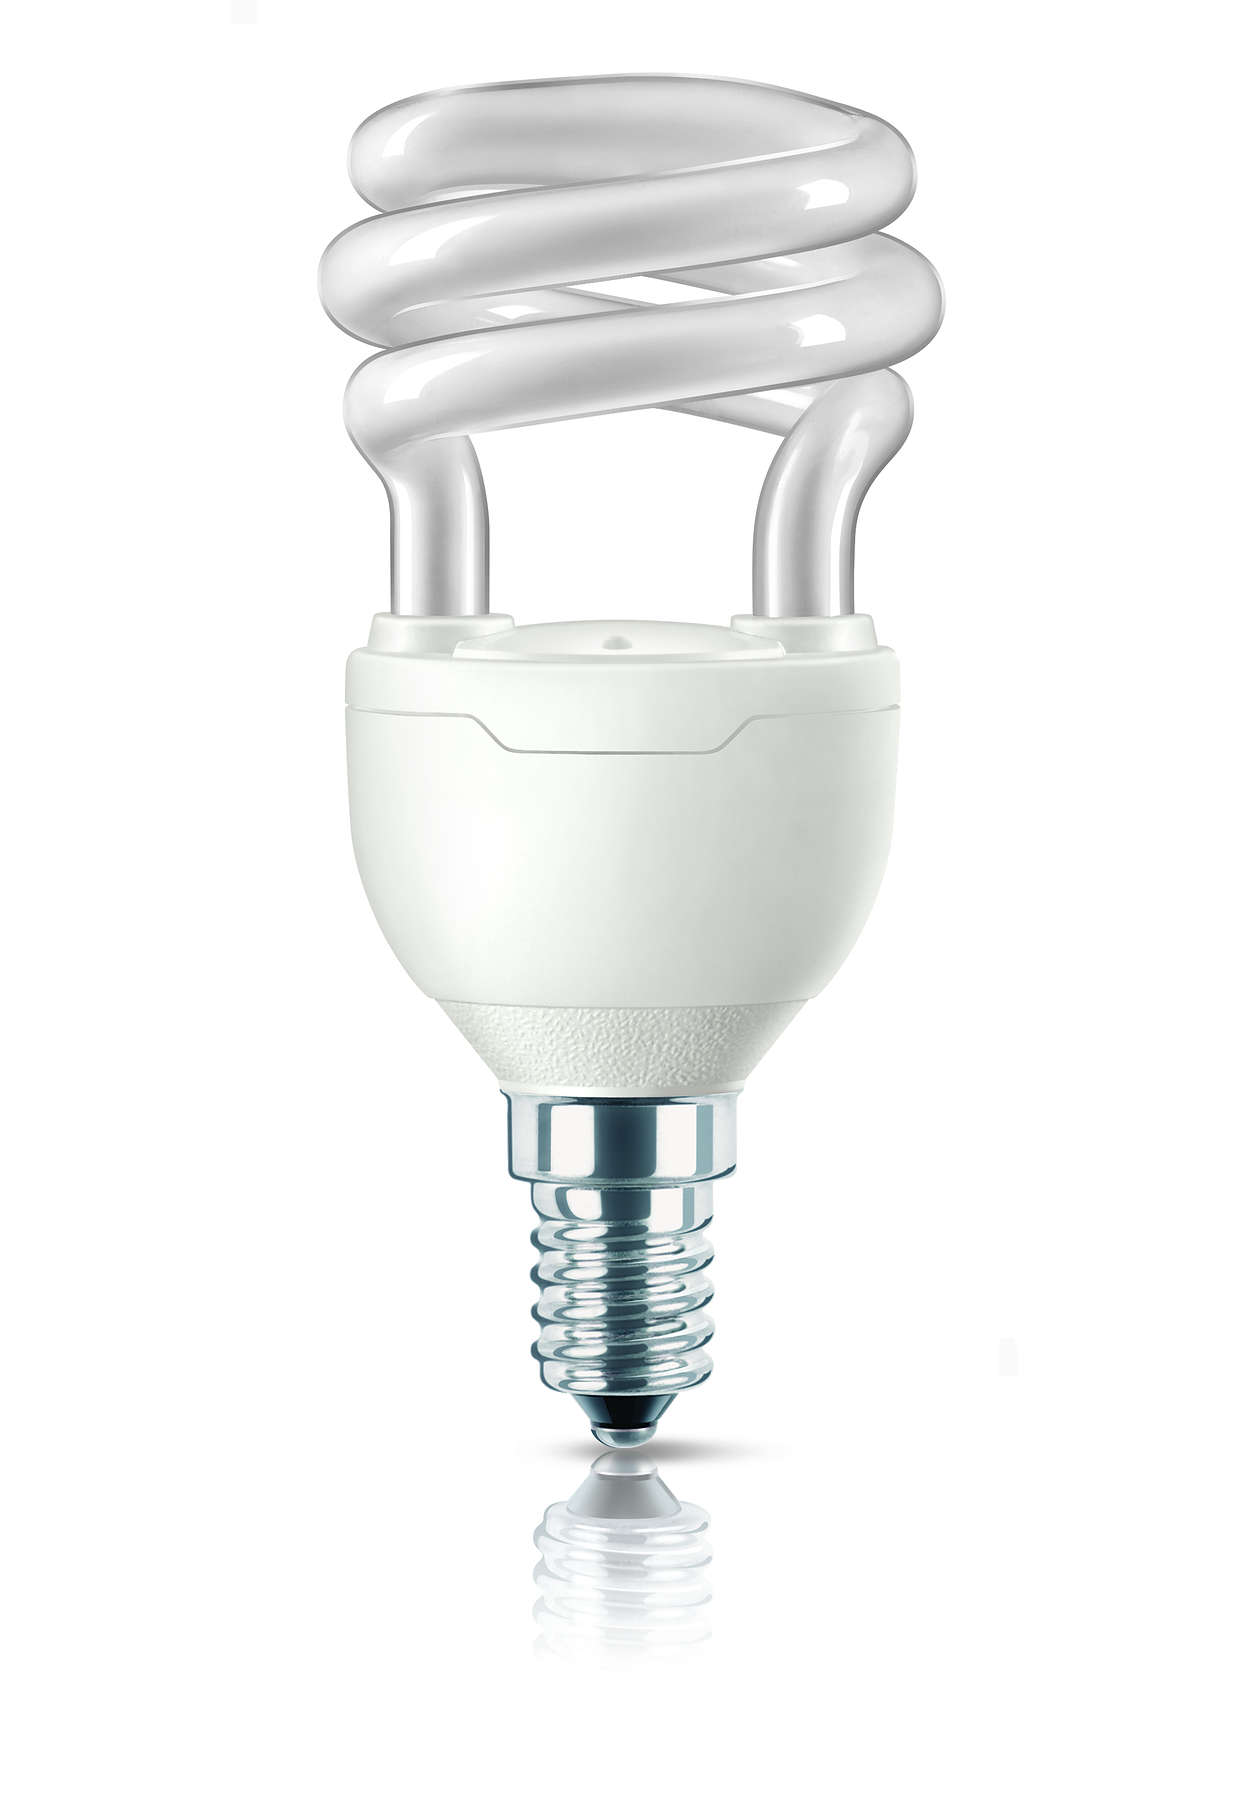 Smallest energy saving lamp